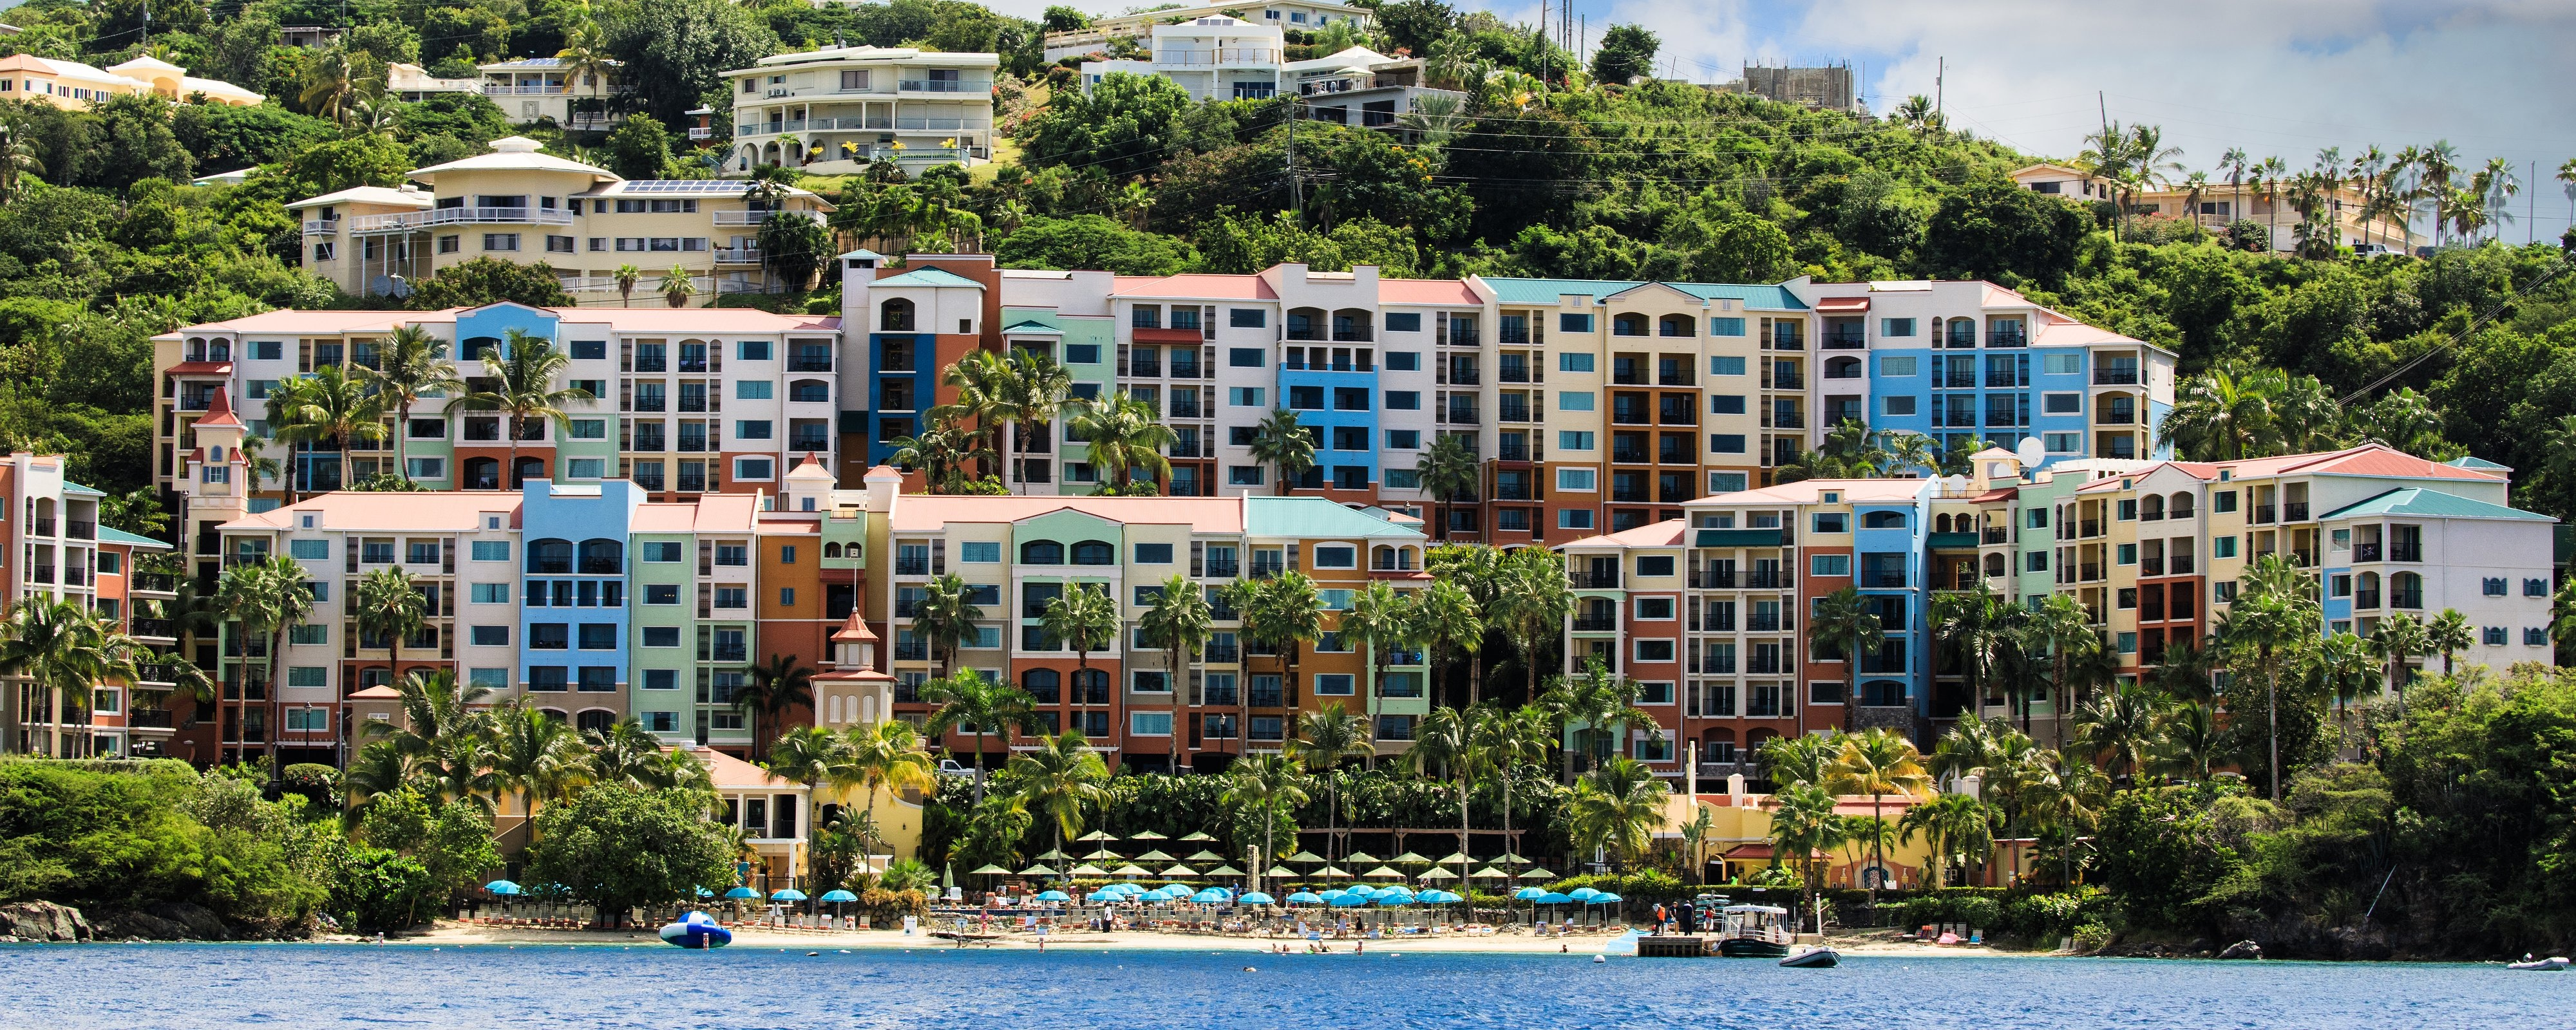 st. thomas villa resort | marriott frenchman's cove